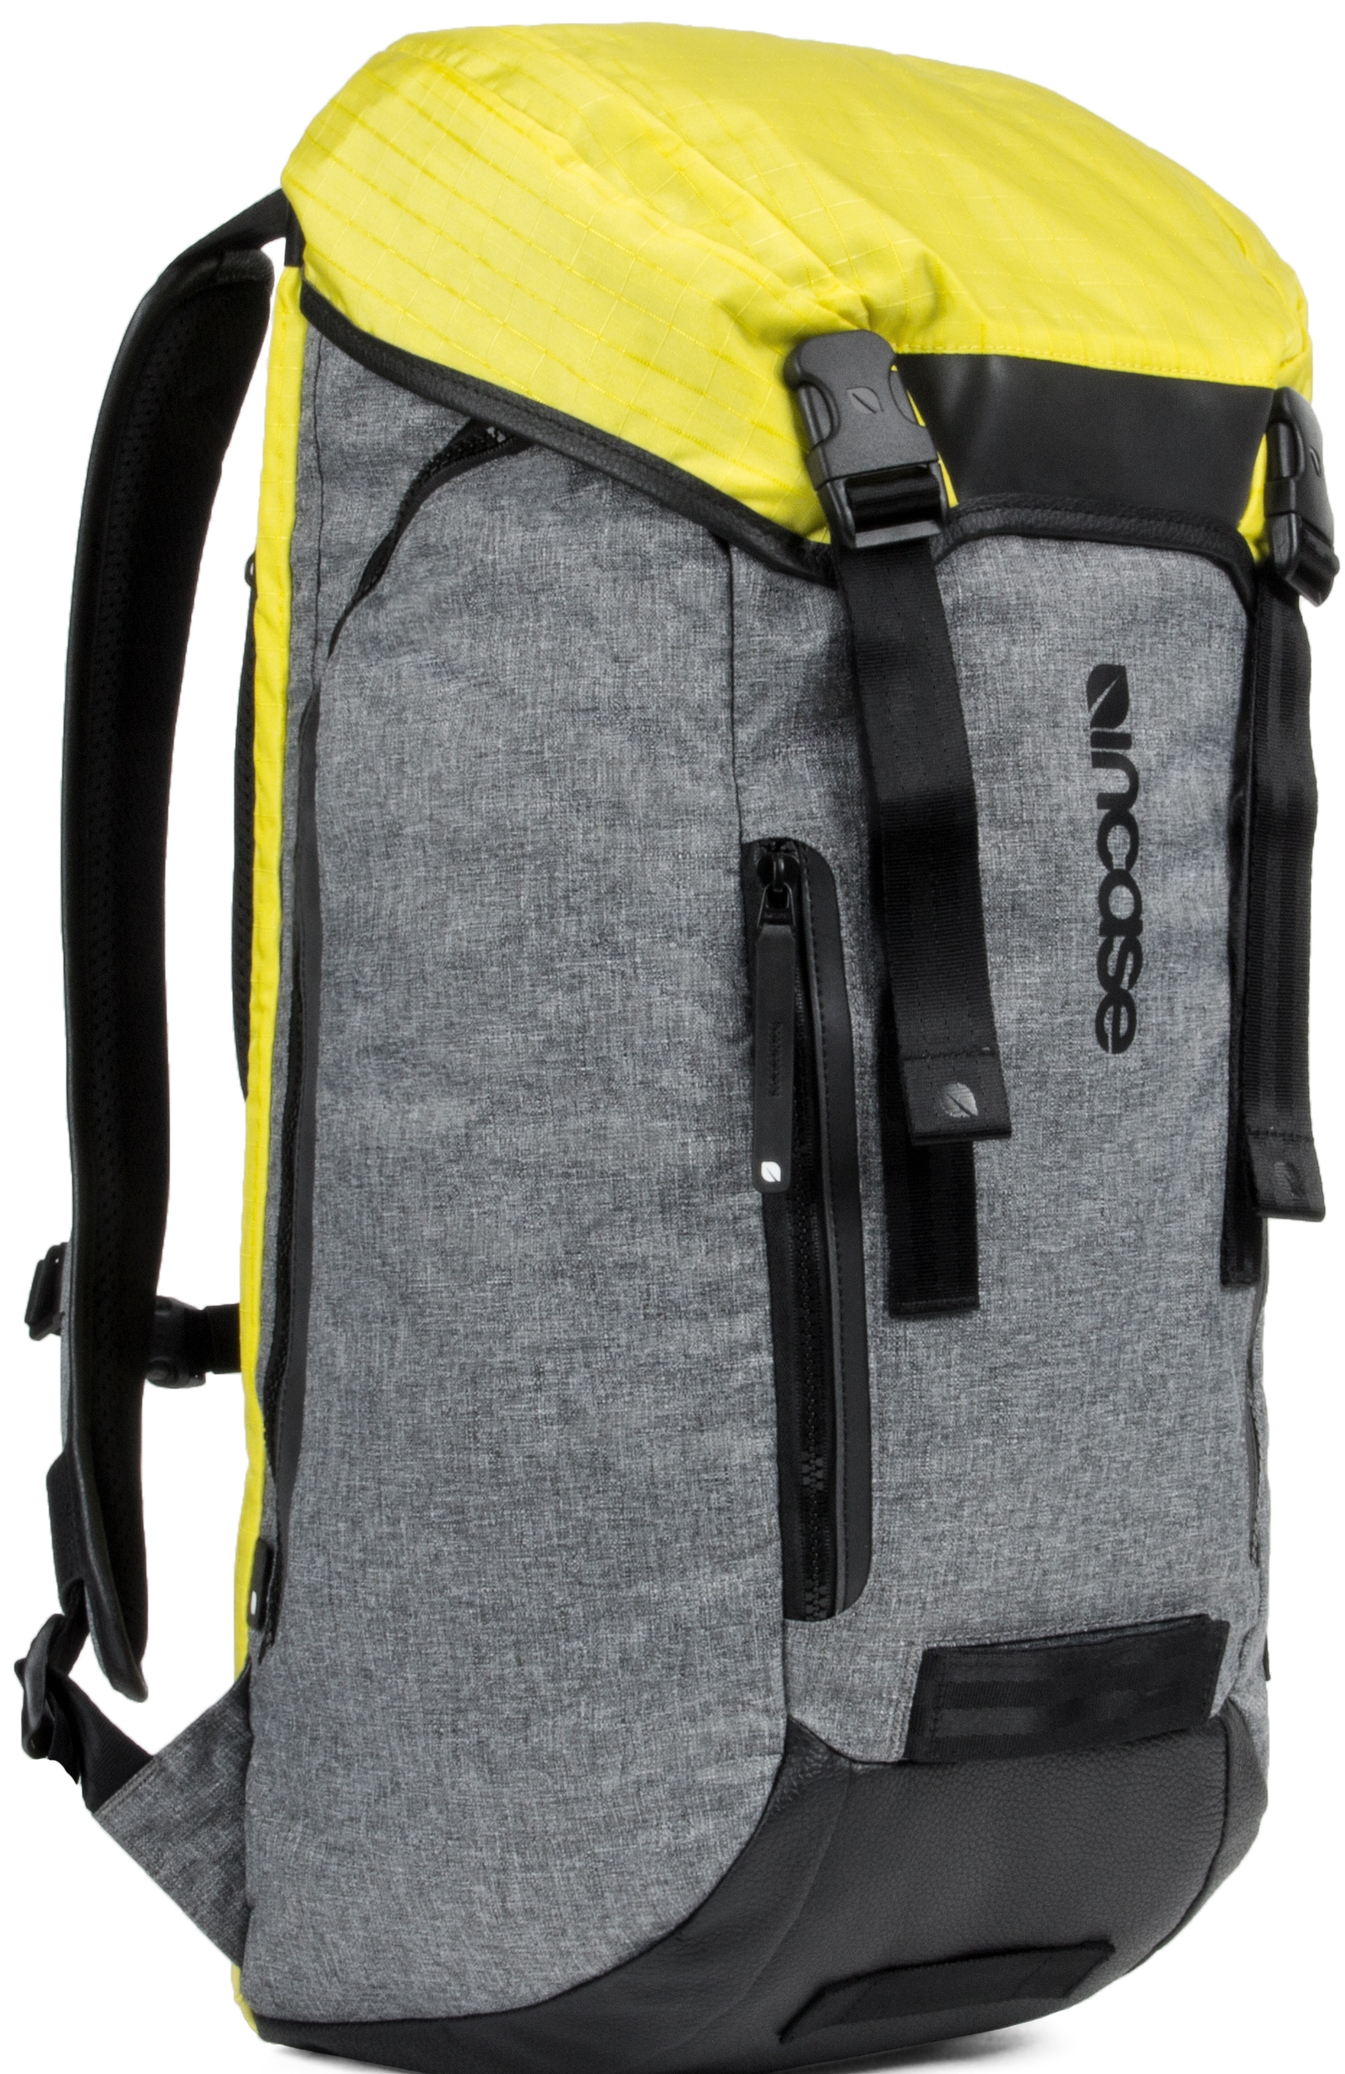 InCase Halo Courier Backpack, $250